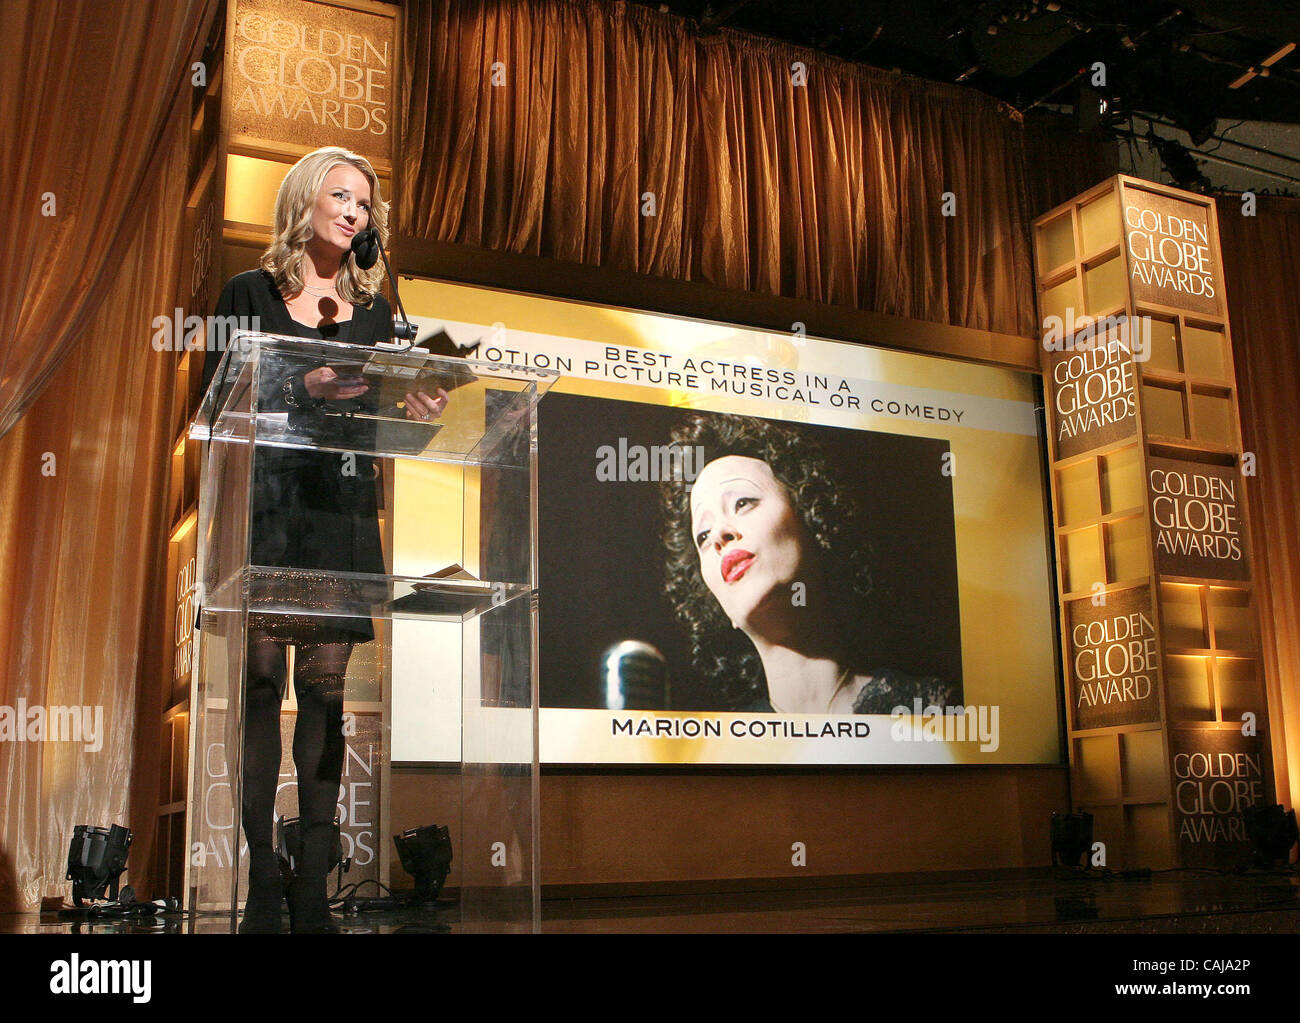 Jan 13 2008 Hollywood California USA TV Host BROOKE ANDERSON Annoucing The Winners At 65th Golden Globe Awards Press Conference Where